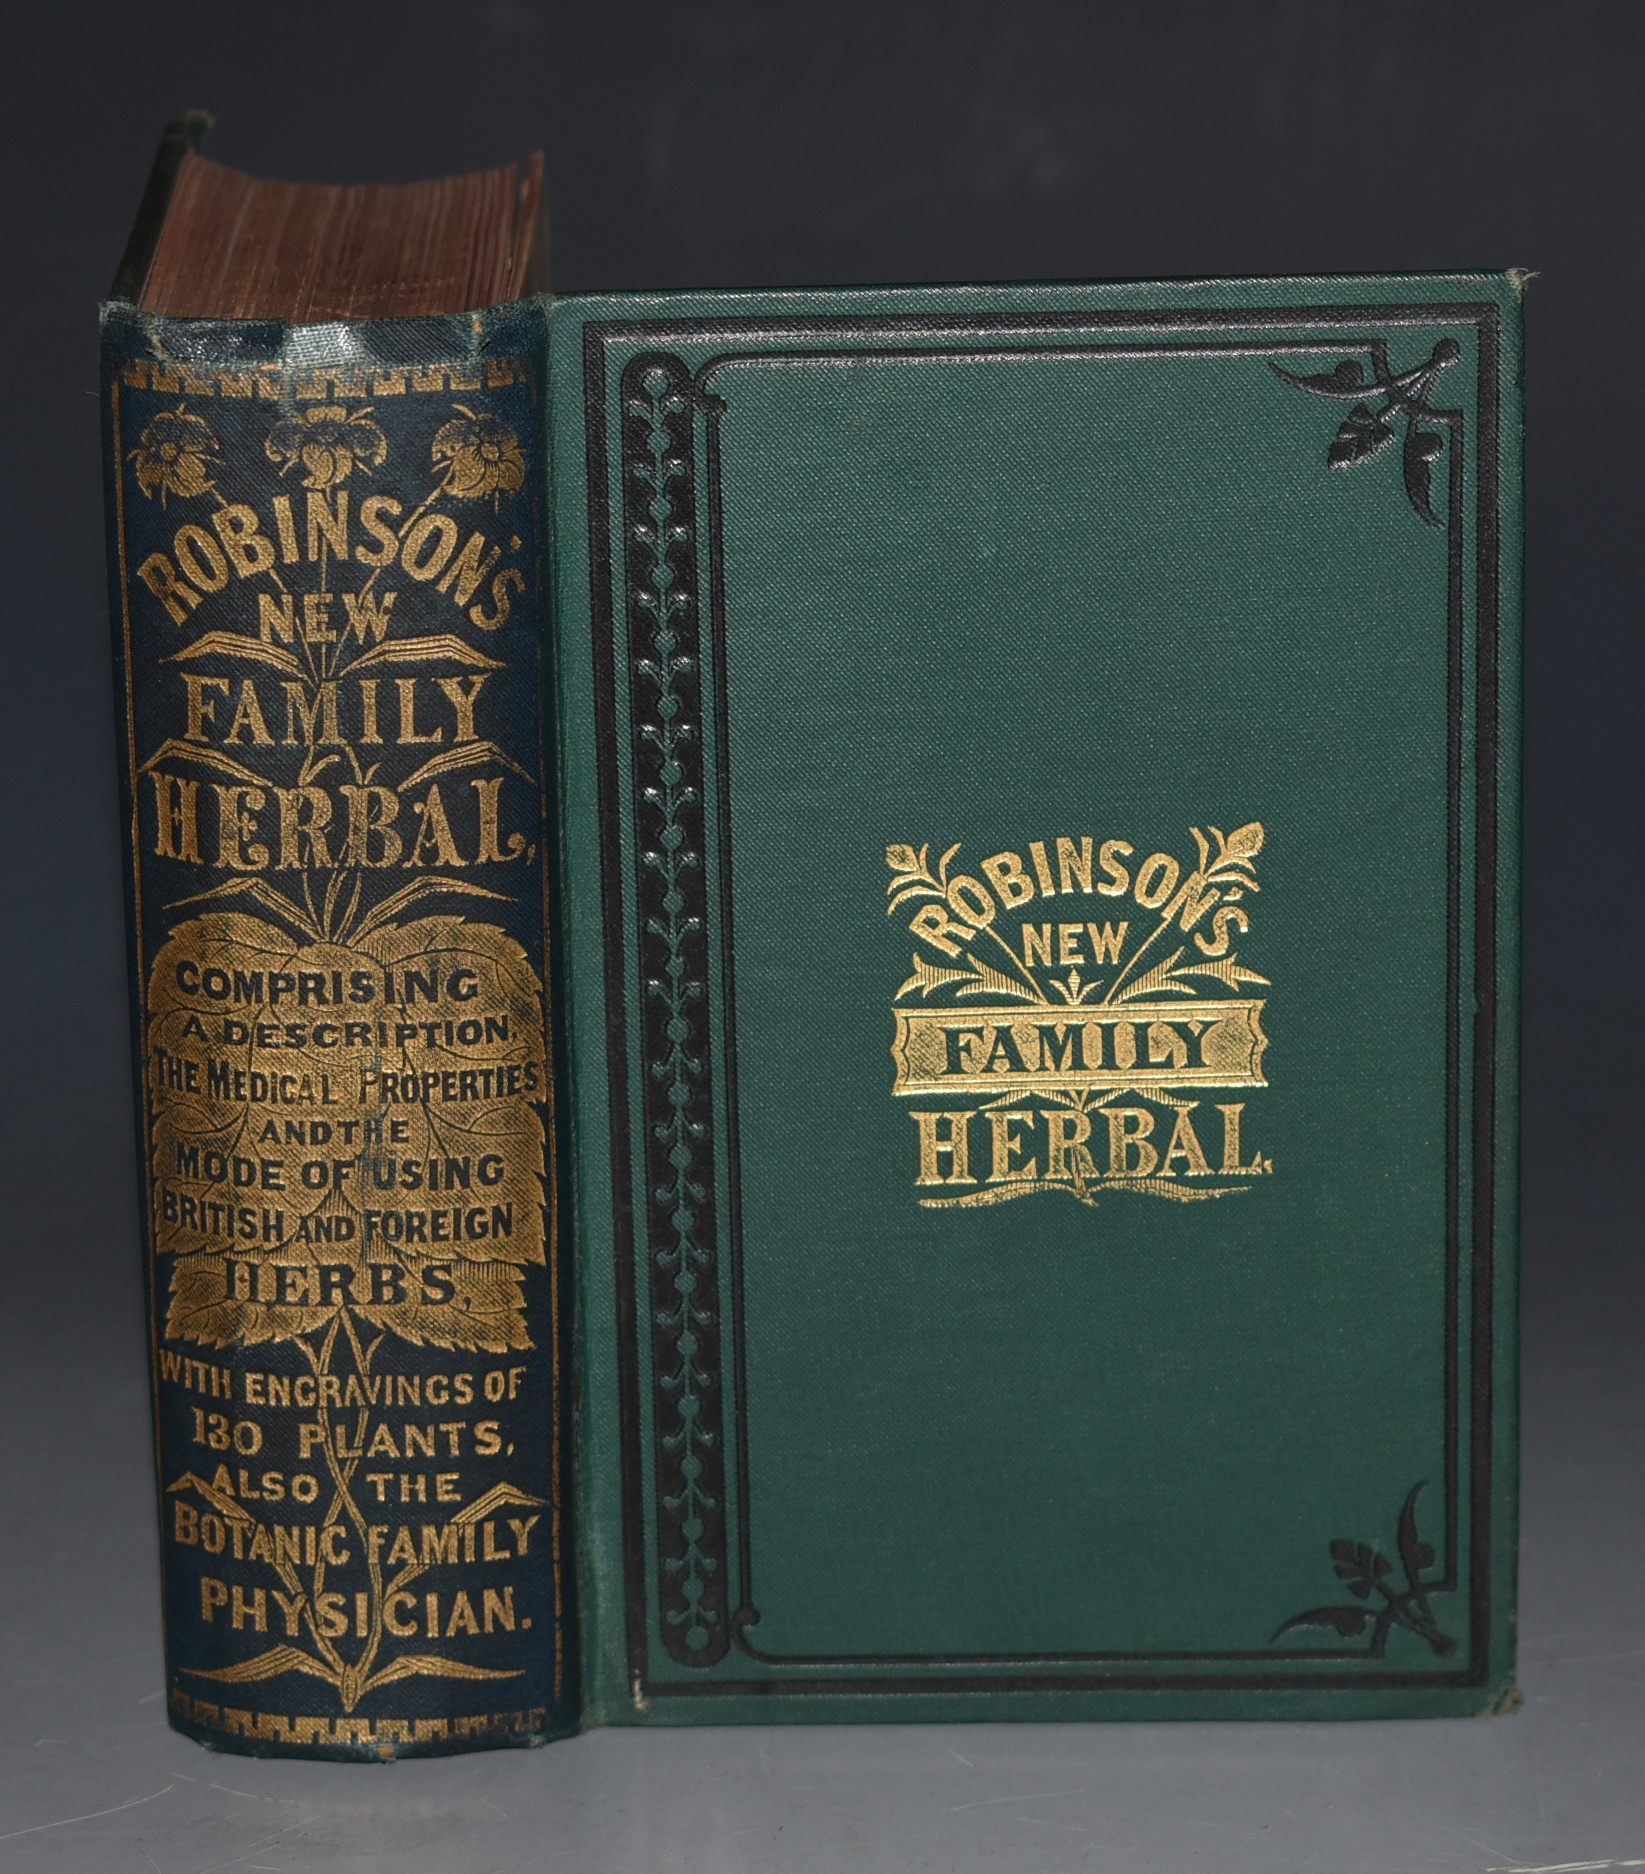 Image for The New Family Herbal: Comprising a description, and the medical virtues of British and Foreign Plants, founded on the works of eminent modern english and american writers on the medical properties of herbs: to which is added, the Botanic Family Physician; valuable medical receipts; and important directions regarding diet, clothing, bathing, air, exercise, &c., &c.